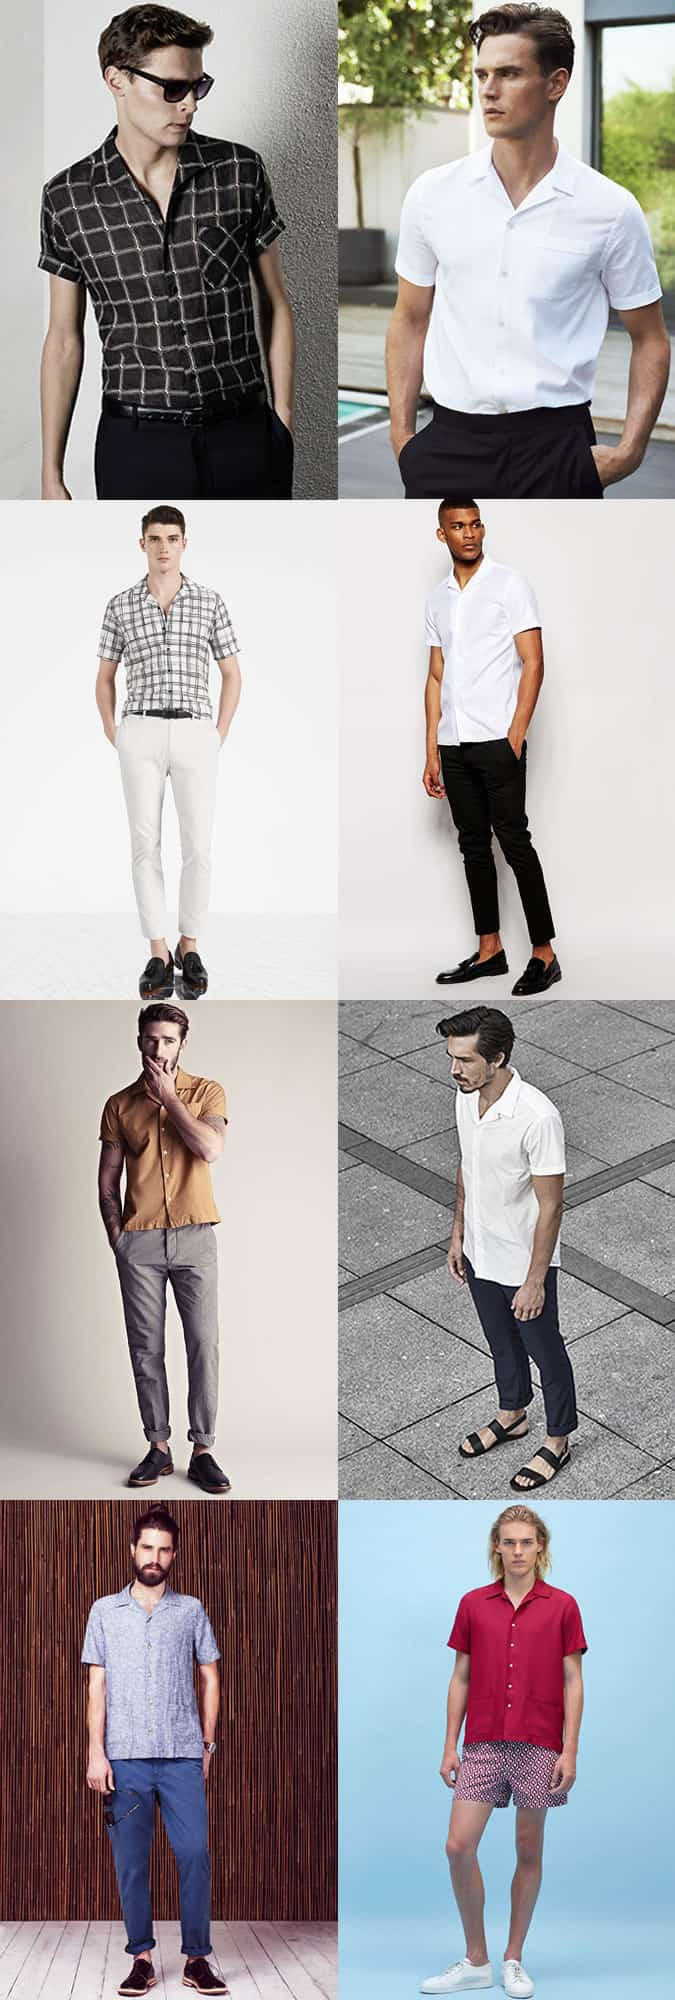 Men's Cuban Collar Shirt Outfit Inspiration Lookbook